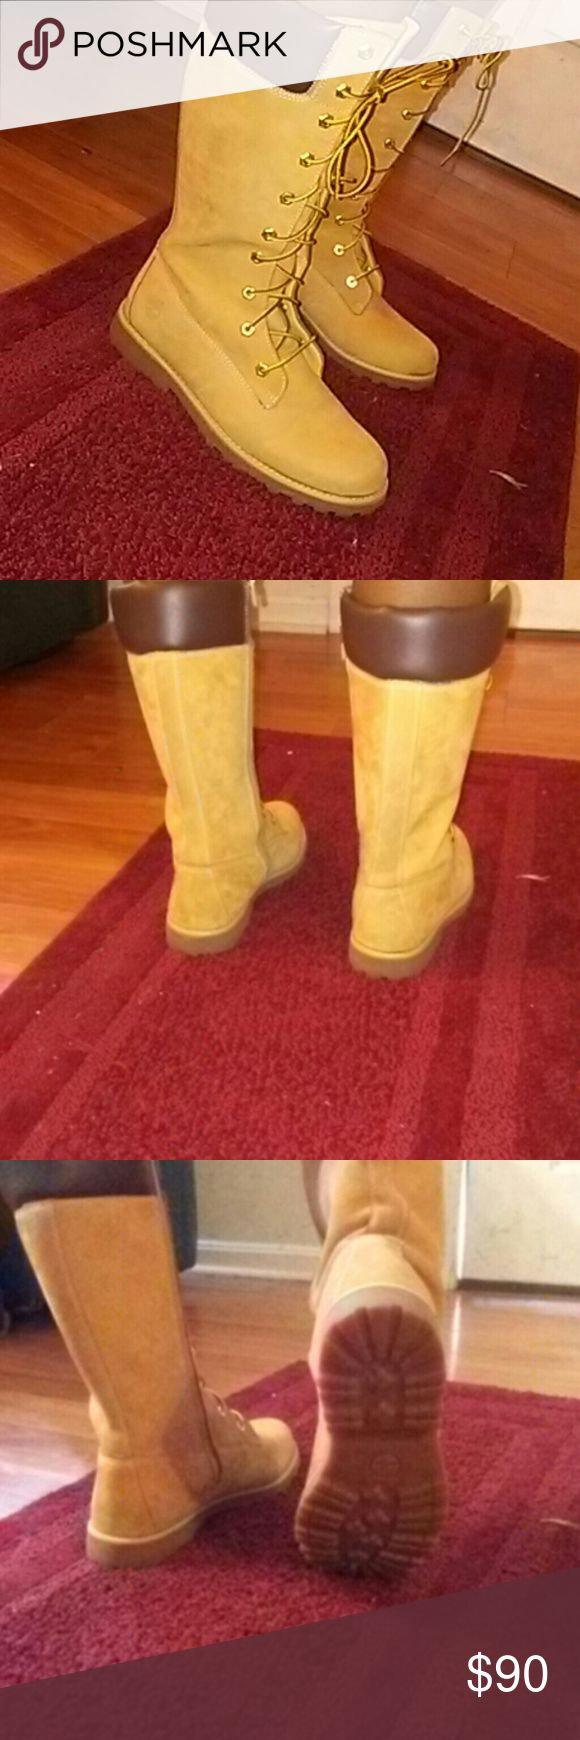 Women Timberland boots !!!!!!!DEAL Wheat Timberland boots ...goes up calf ....brand new...i purchased these in the mall and literally wore them once for 2 hours...they have resided in my closet ...great condition Timberland Shoes Over the Knee Boots